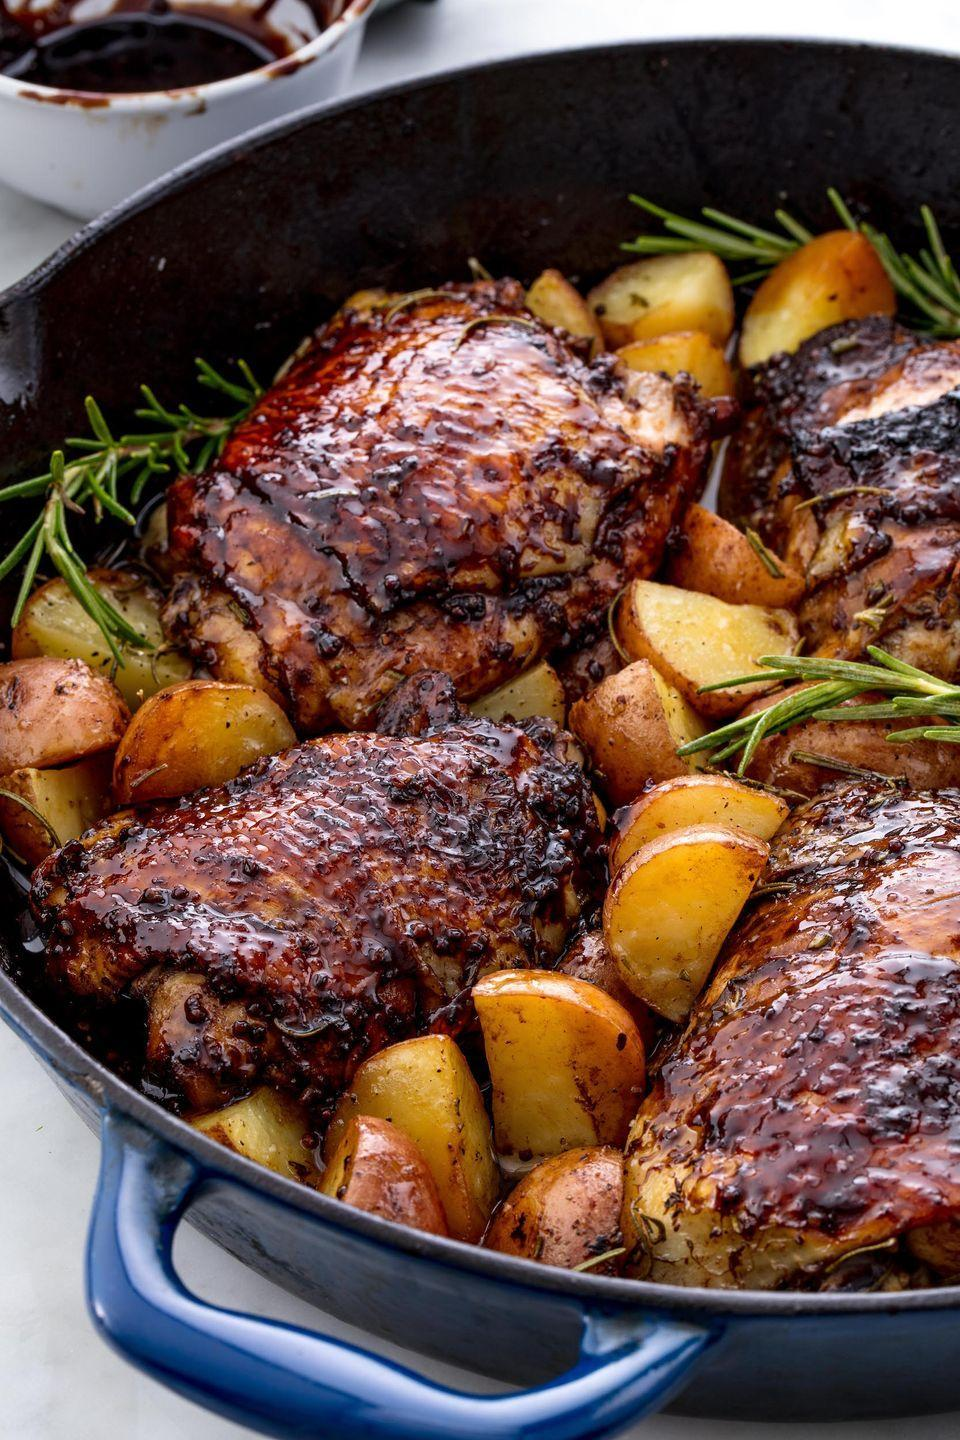 "<p>This sweet, tangy chicken is the perfect weeknight dinner.</p><p>Get the recipe from <a href=""https://www.delish.com/cooking/recipe-ideas/recipes/a49138/balsamic-glazed-chicken/"" rel=""nofollow noopener"" target=""_blank"" data-ylk=""slk:Delish"" class=""link rapid-noclick-resp"">Delish</a>.</p>"